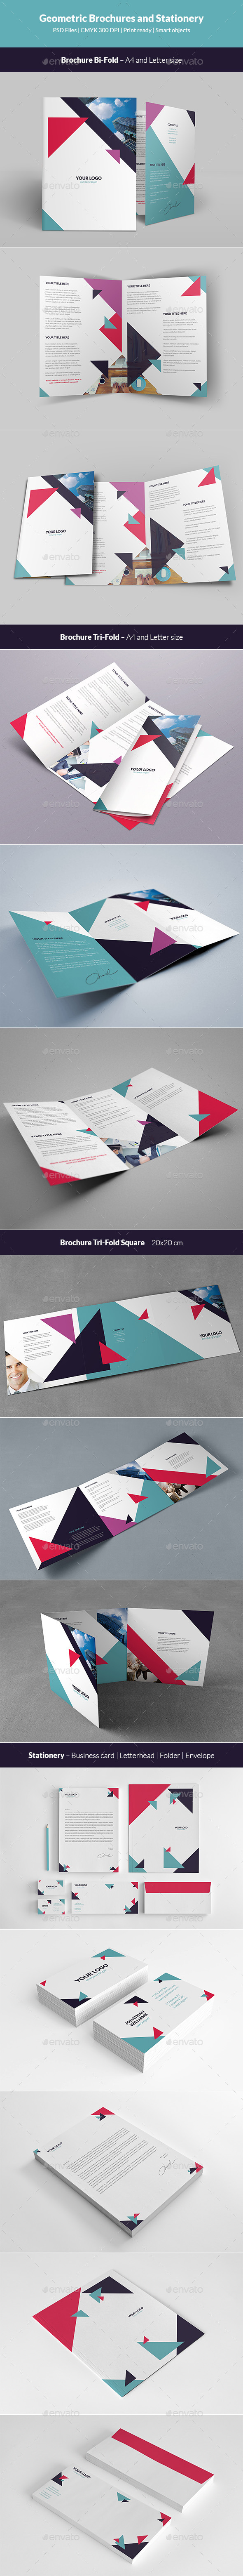 Geometric Brochures and Stationery - Stationery Print Templates